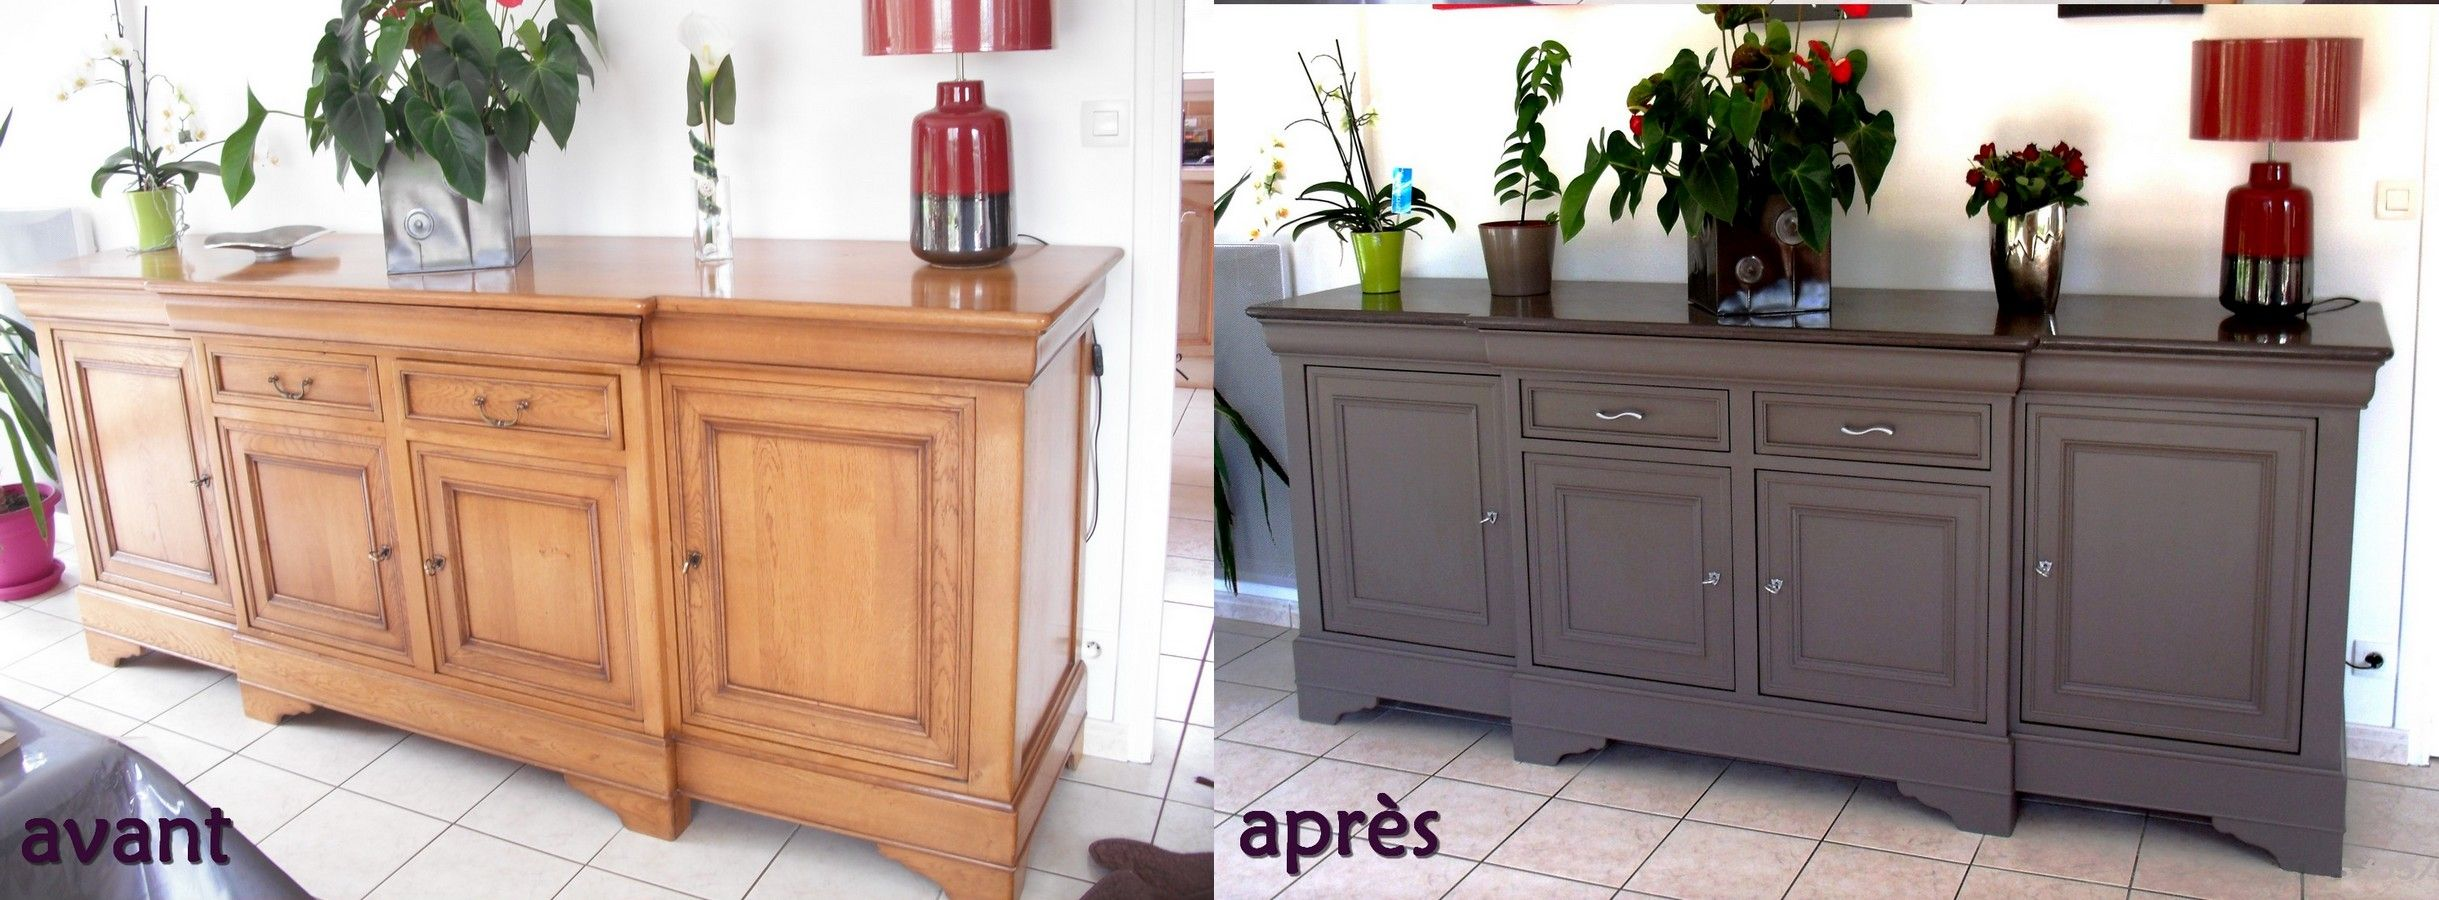 Avant buffet enfilade en ch ne vernis apr s peinture for Buffet meuble